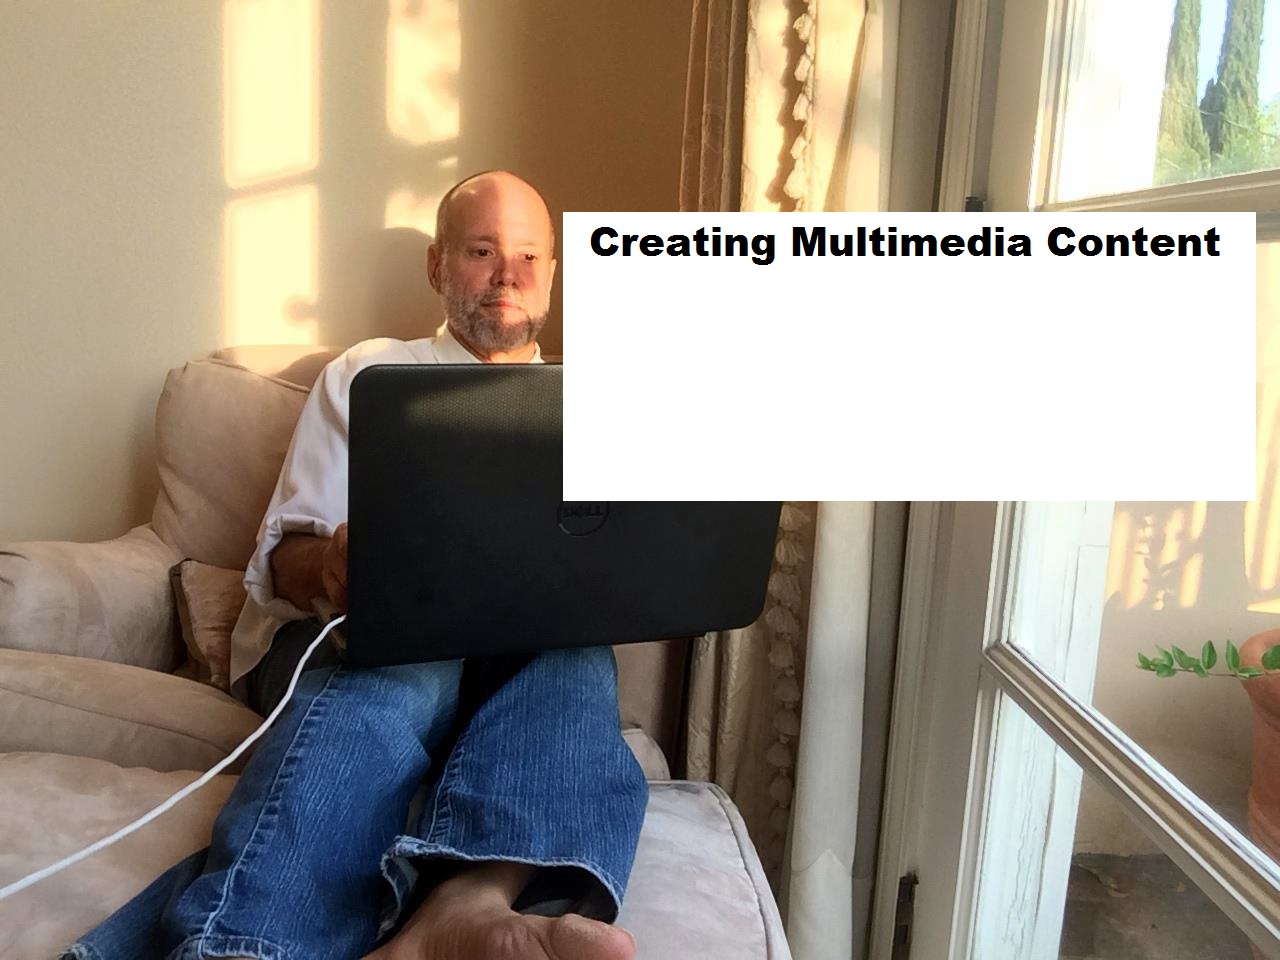 creating multimedia content